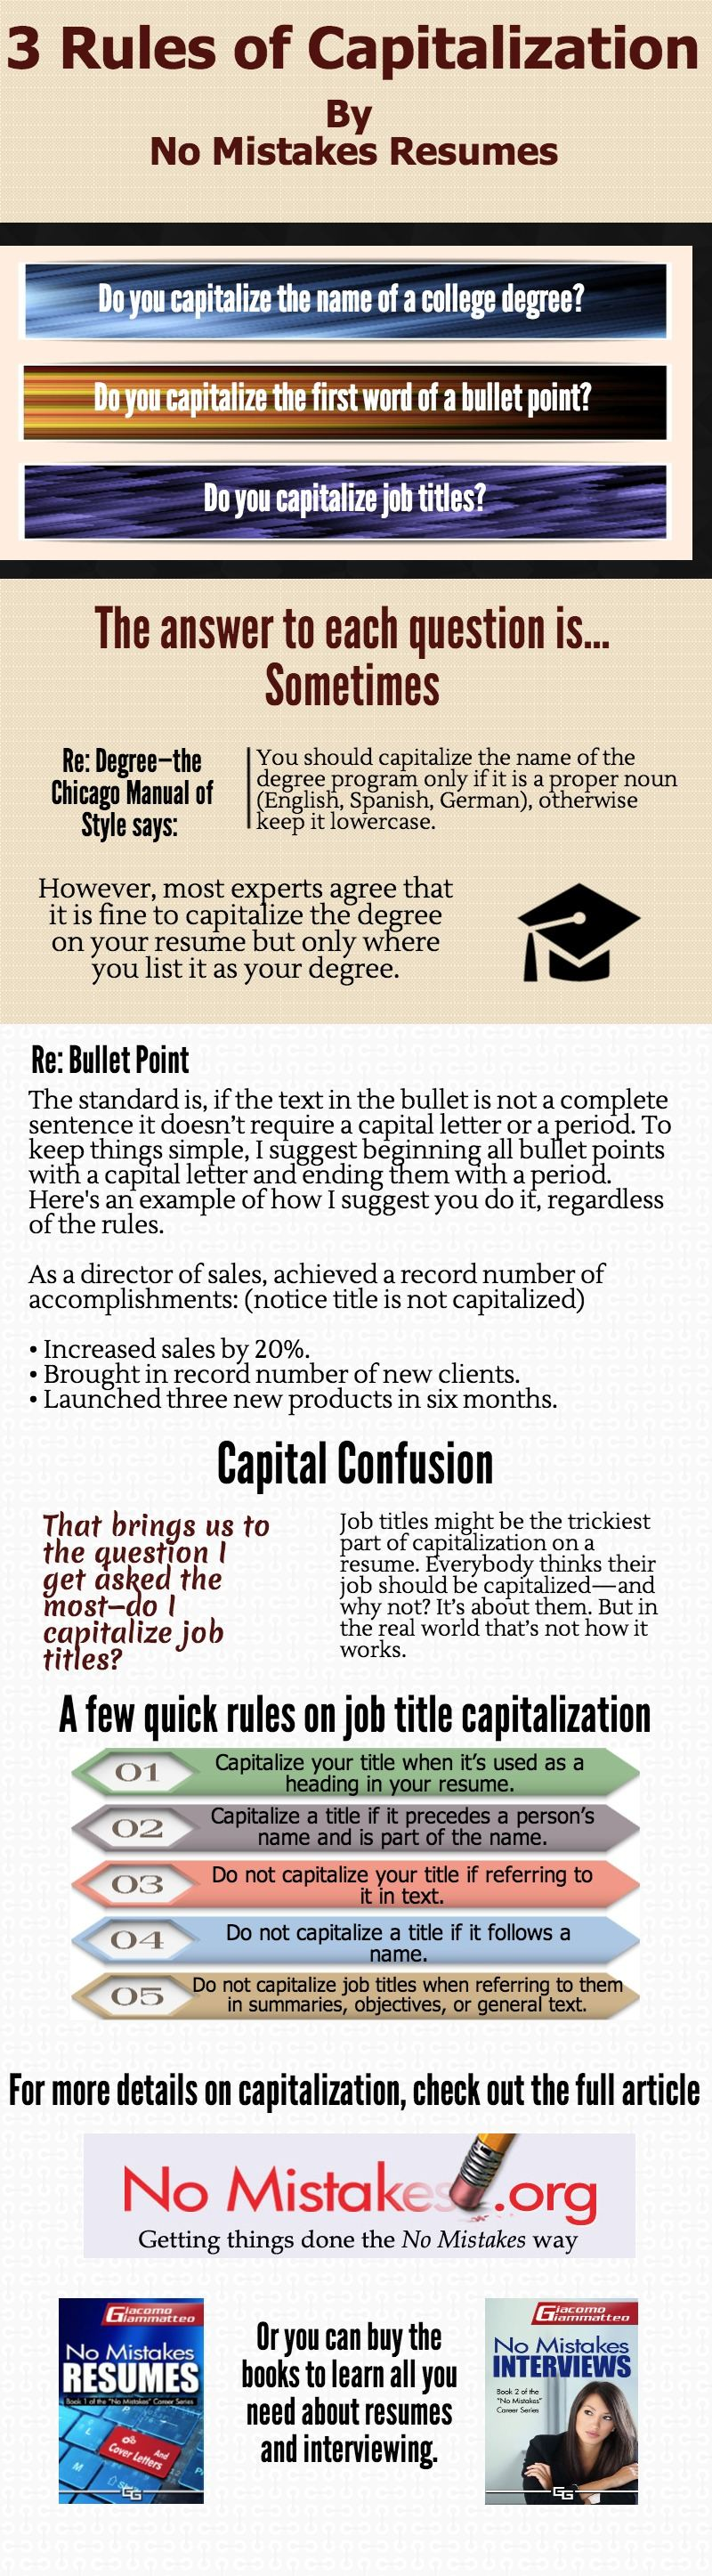 Rules For Capitalization on Resumes No Mistakes Resumes